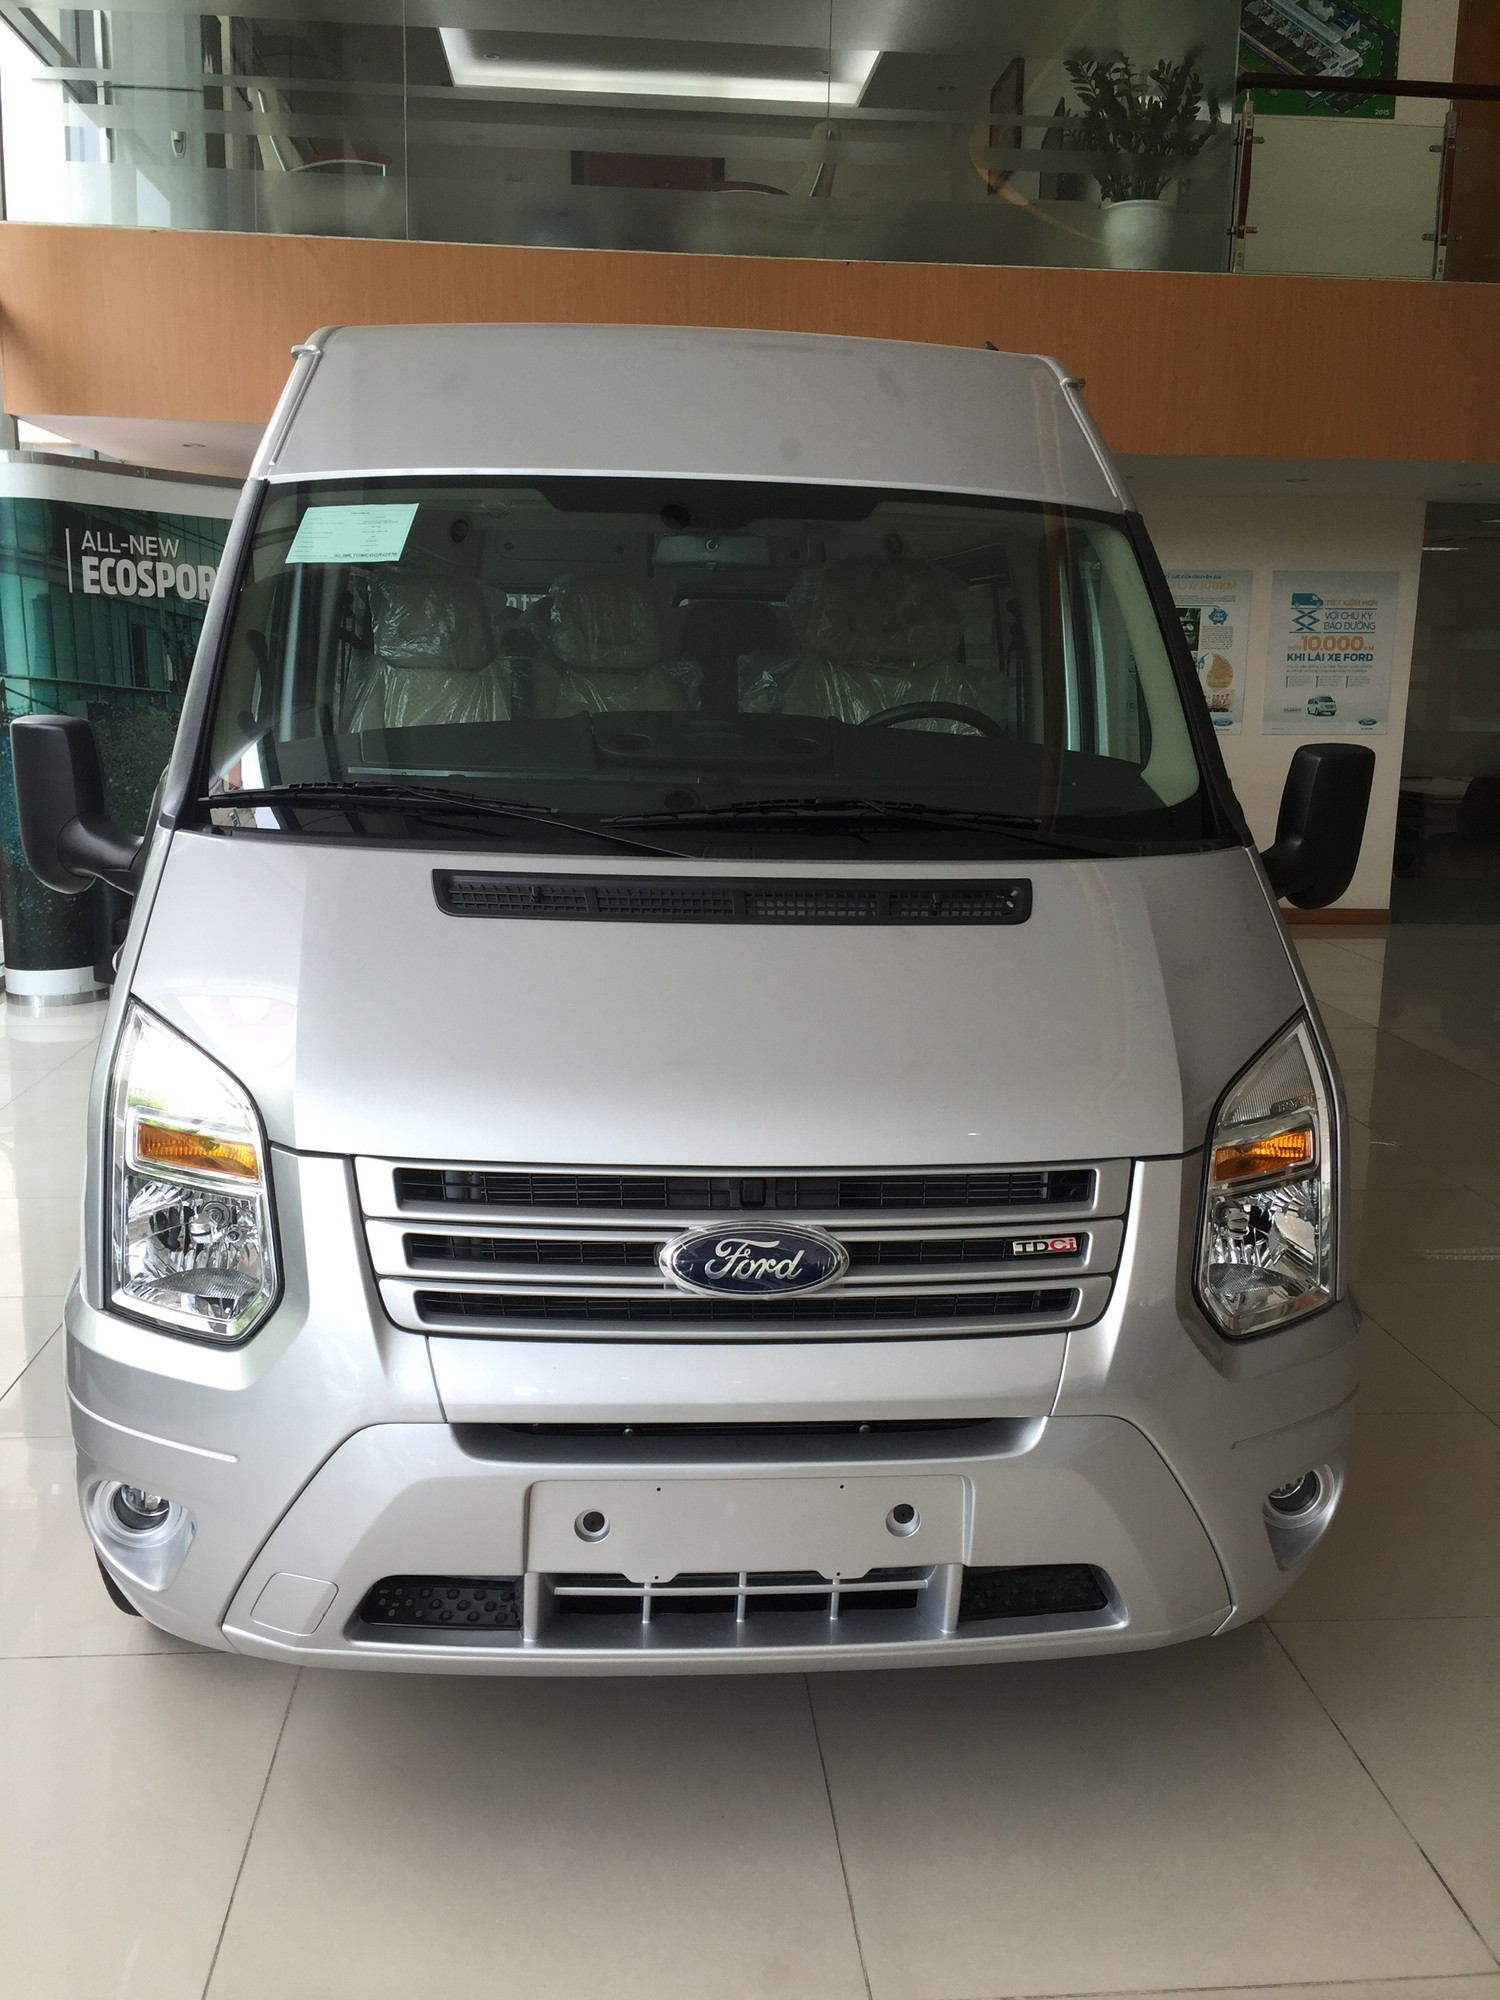 Ford Ranger, Ford Transit, Ford Ecosport, Fiesta, Focus giao ngay Ảnh số 42770434